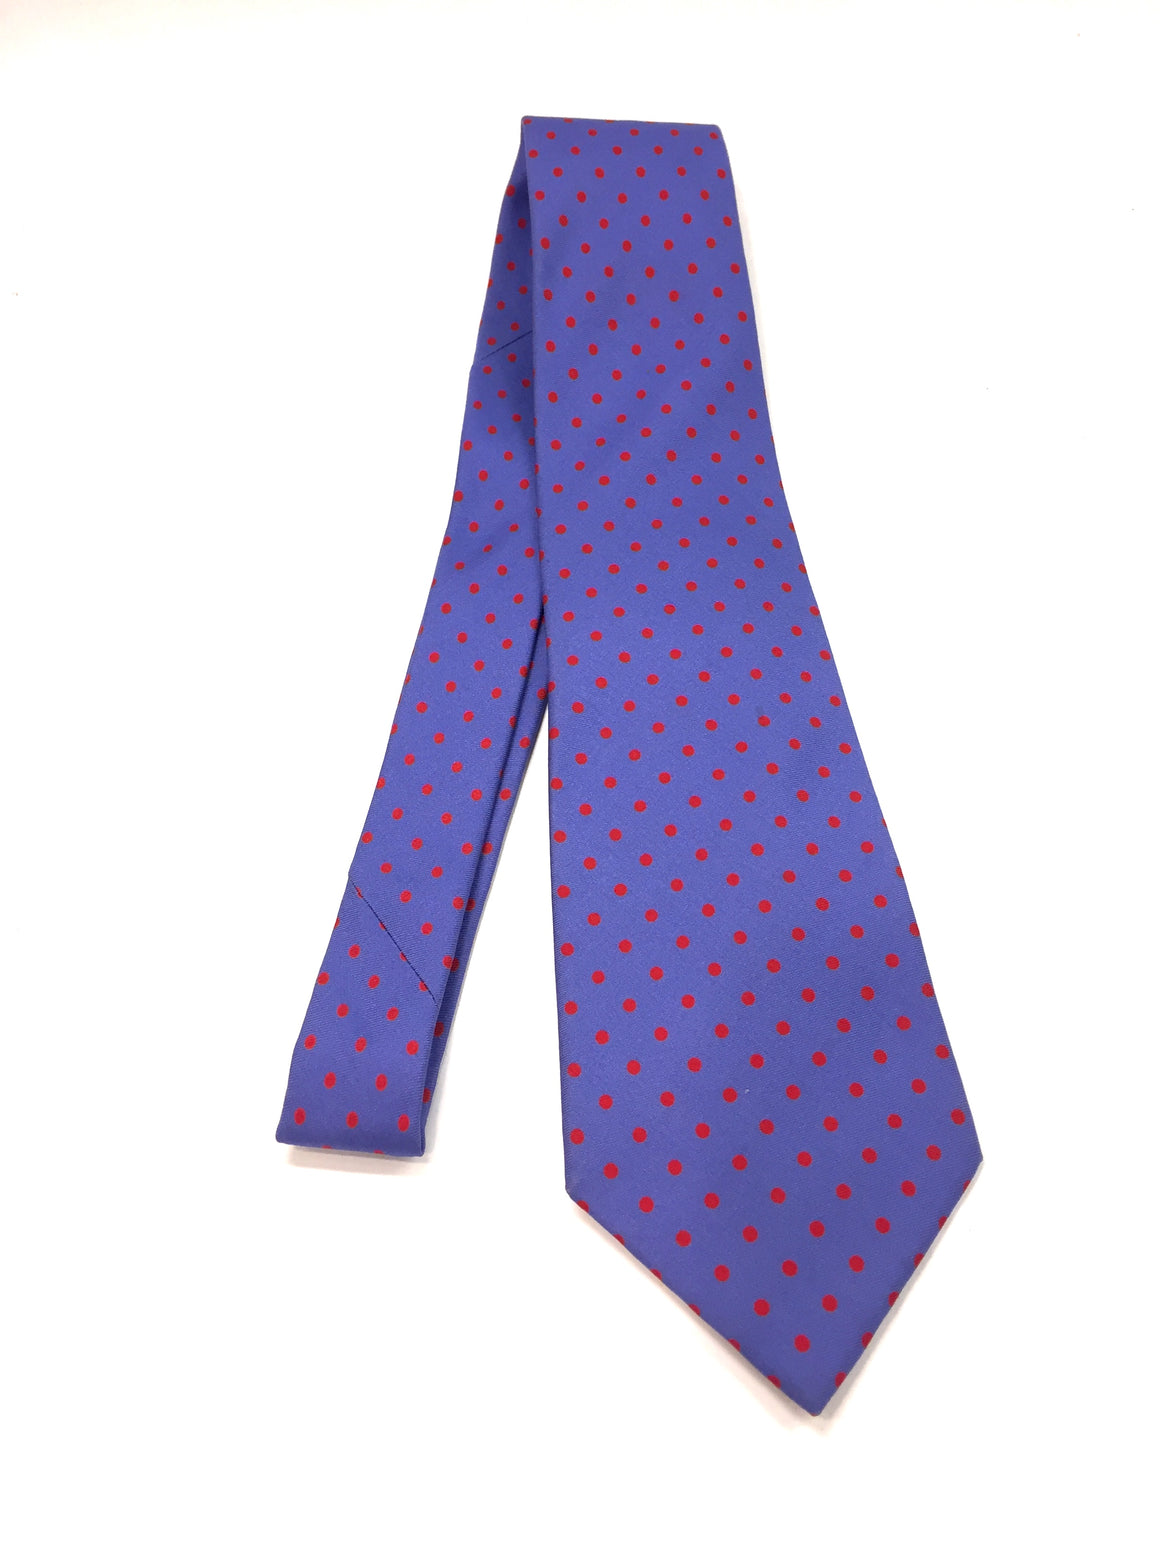 ETRO Lavender-Blue/Red Polka Dot Print Silk Neck Tie